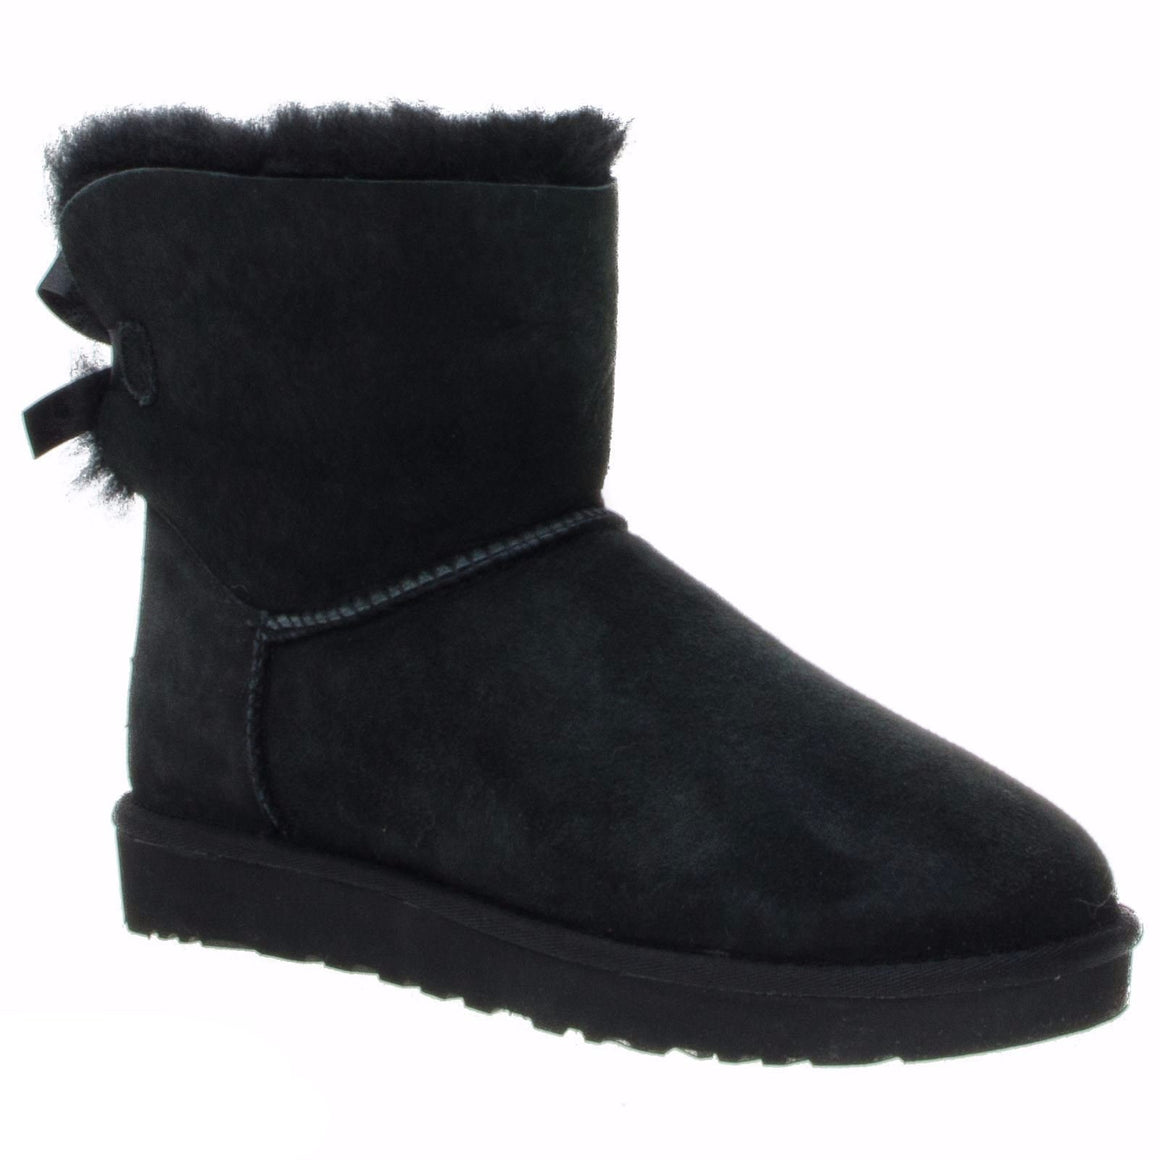 UGG Mini Bailey Bow Black Boots